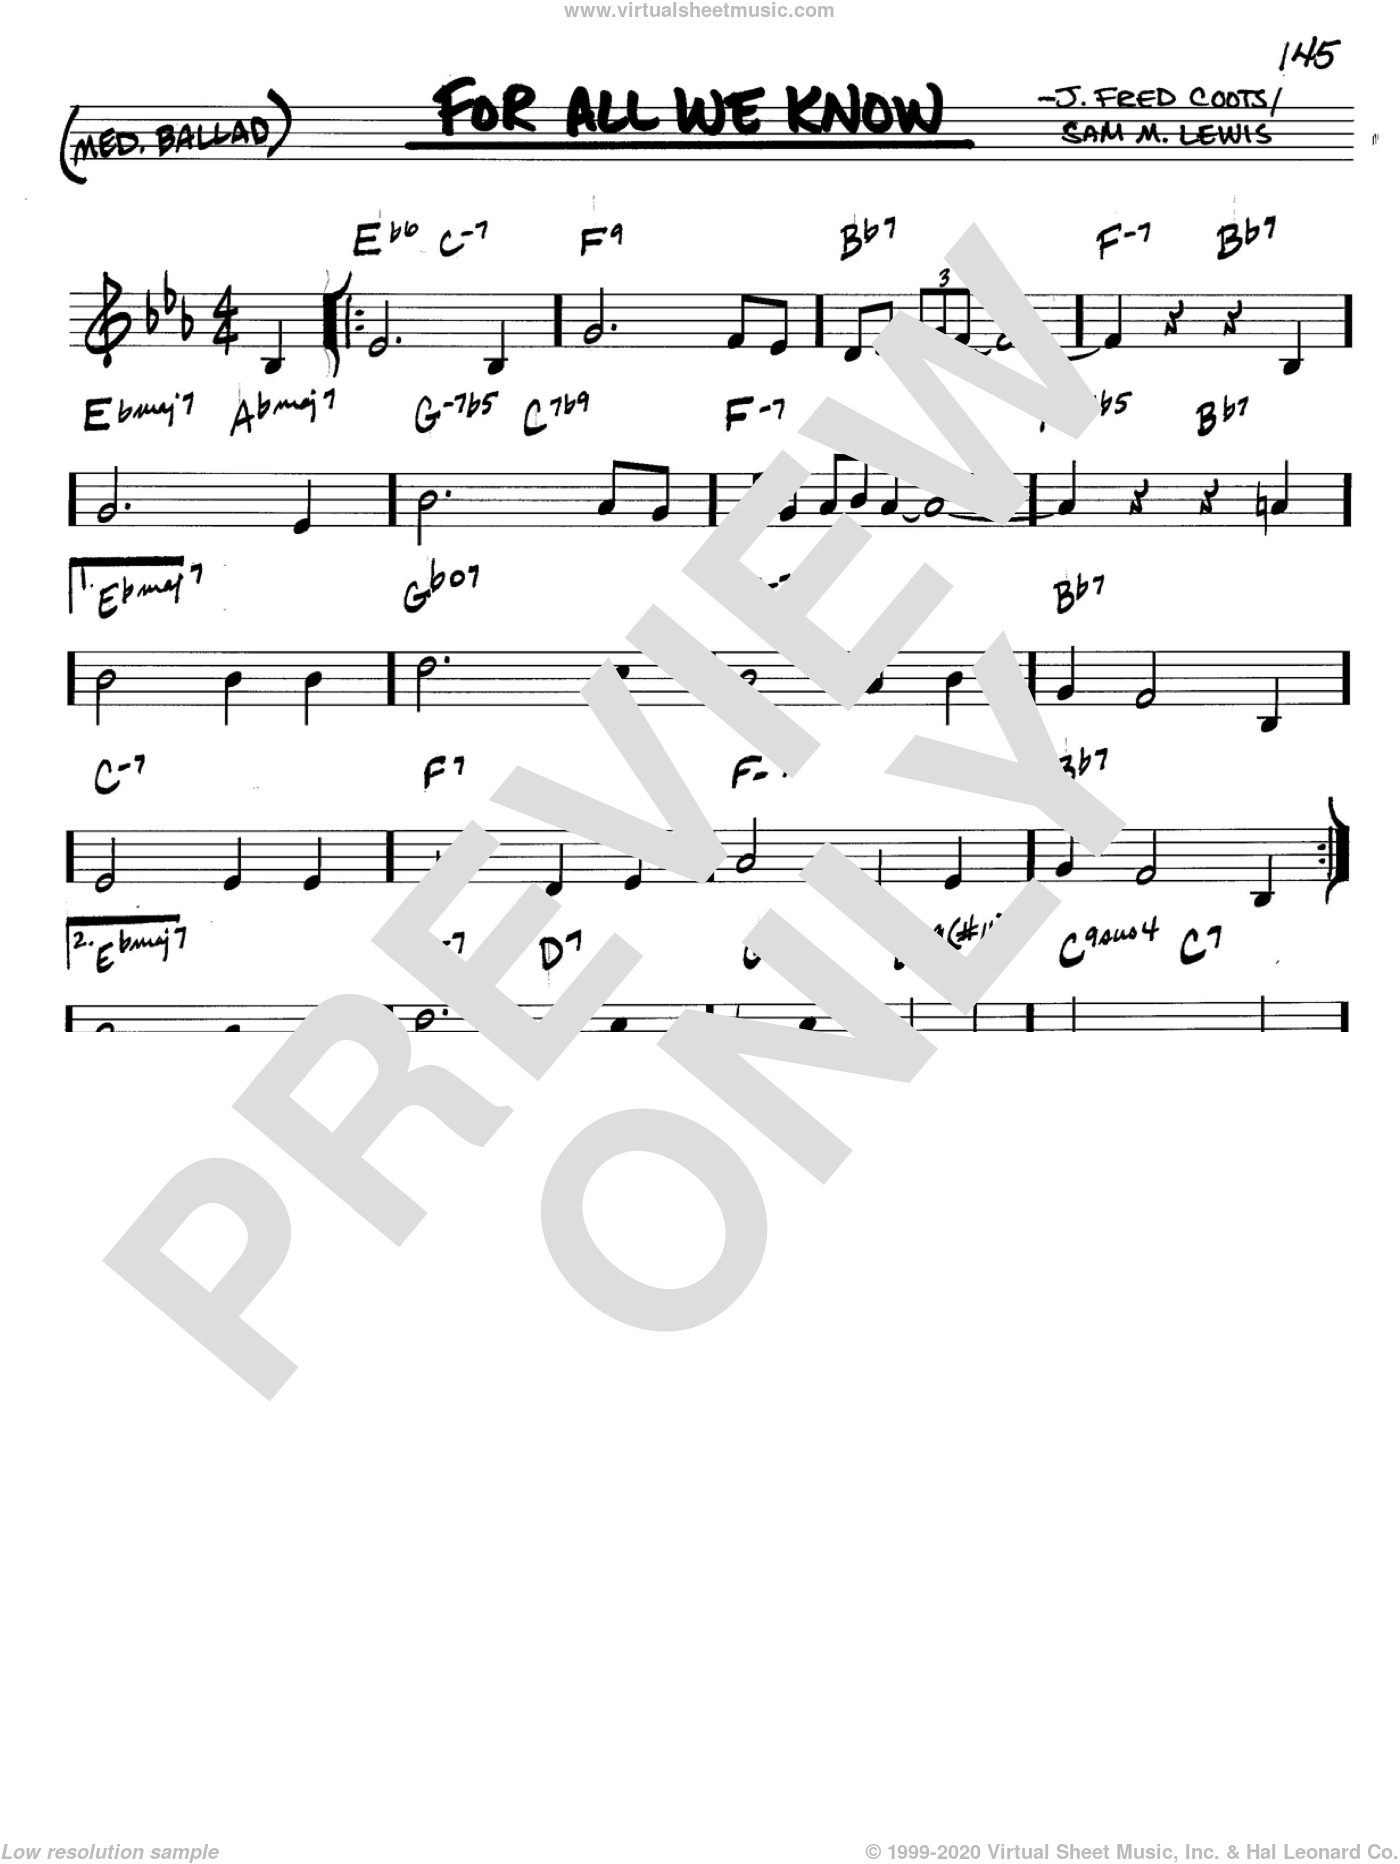 For All We Know sheet music for voice and other instruments (C) by J. Fred Coots and Sam Lewis, intermediate voice. Score Image Preview.